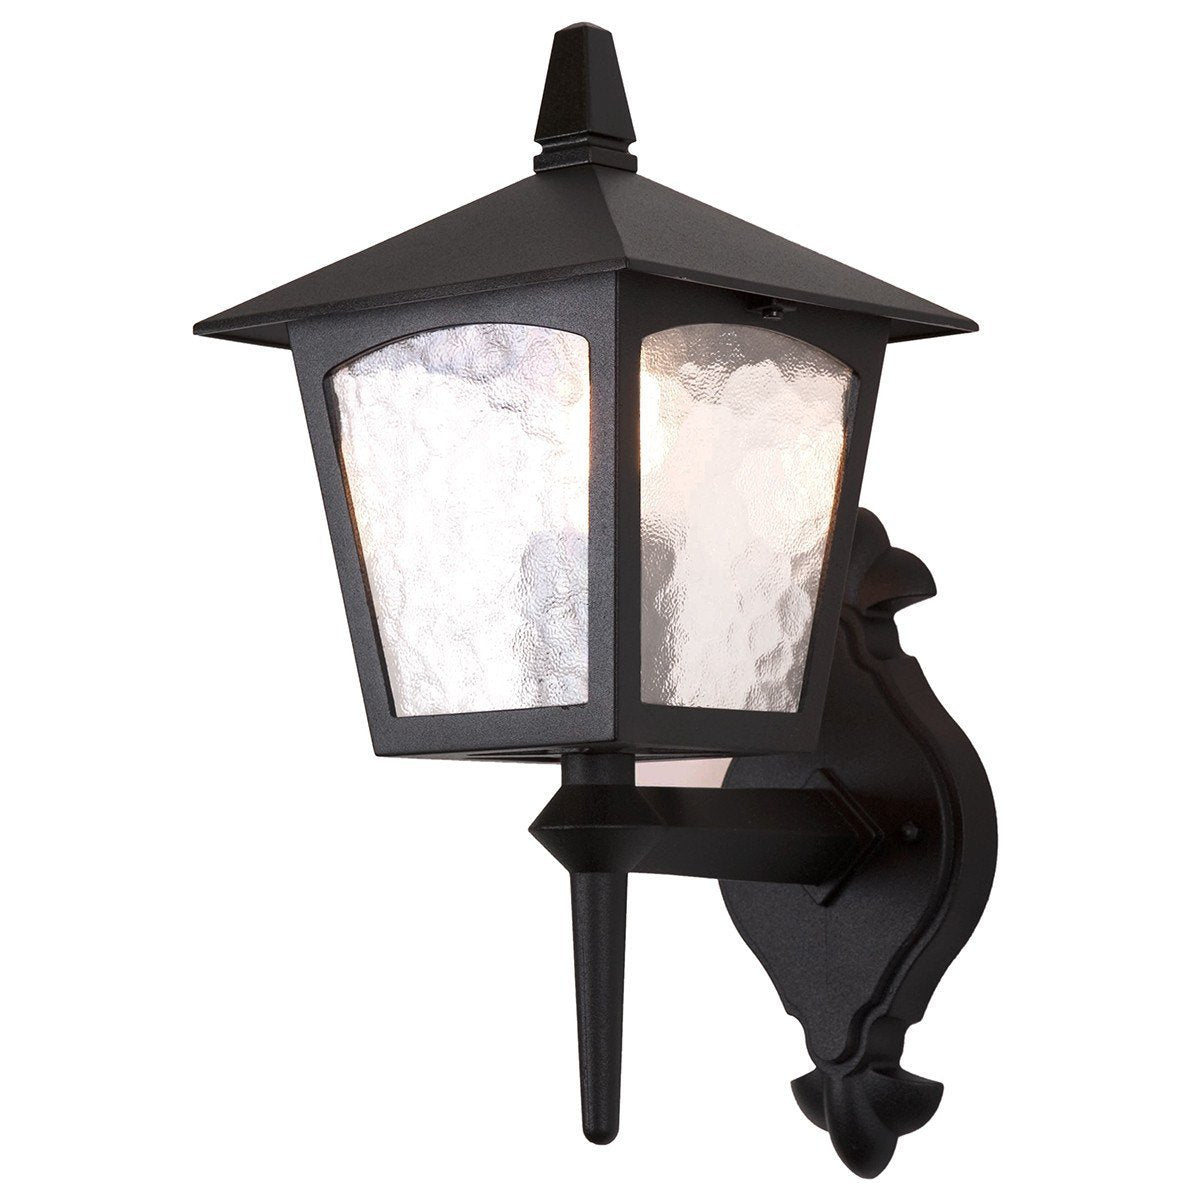 York Wall Up Lantern Black - London Lighting - 1